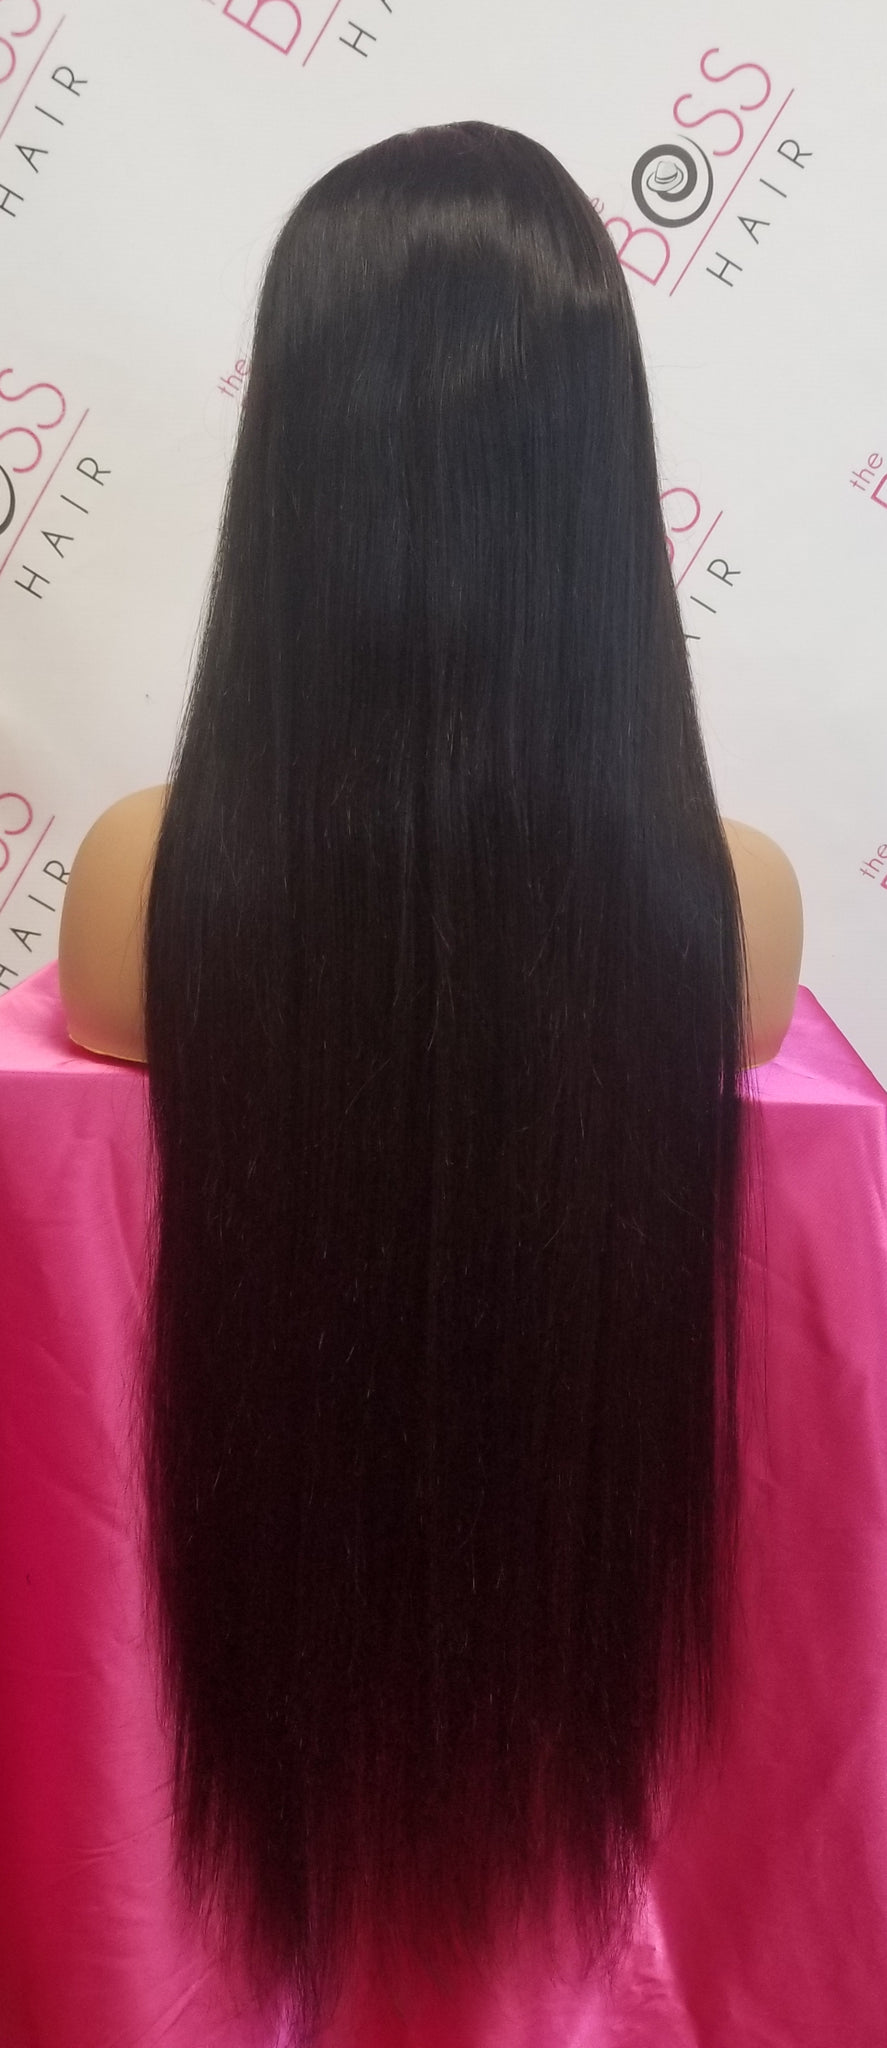 "30"" Frontal Lace Wig 13x4 - Straight 130% Density"